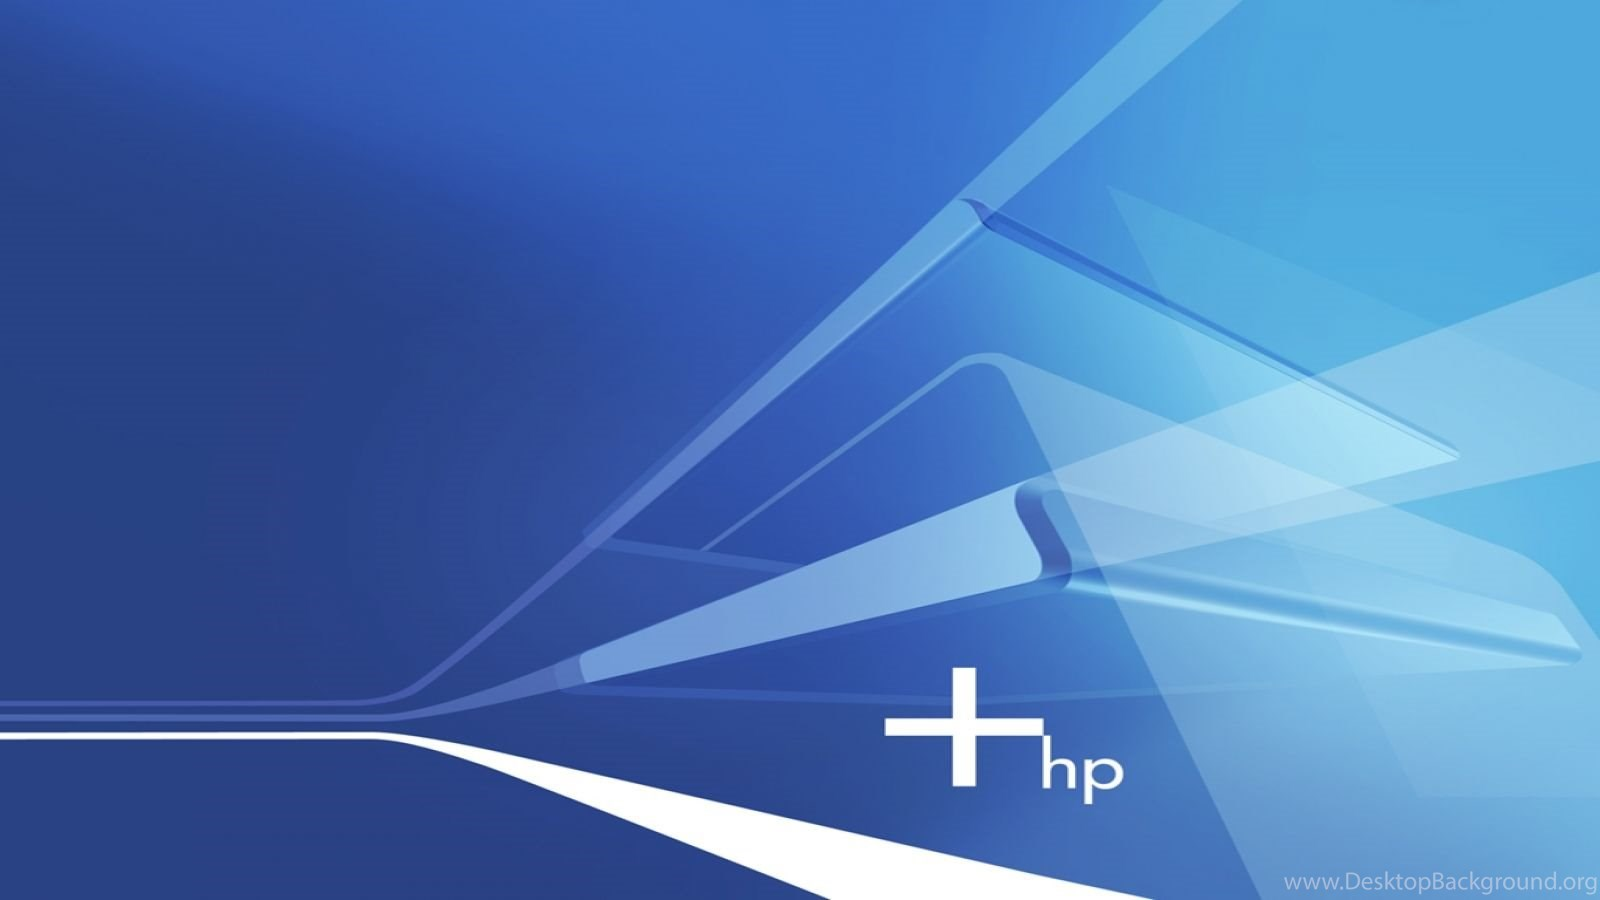 top hp wallpapers 1600x900 resolution images for pinterest desktop